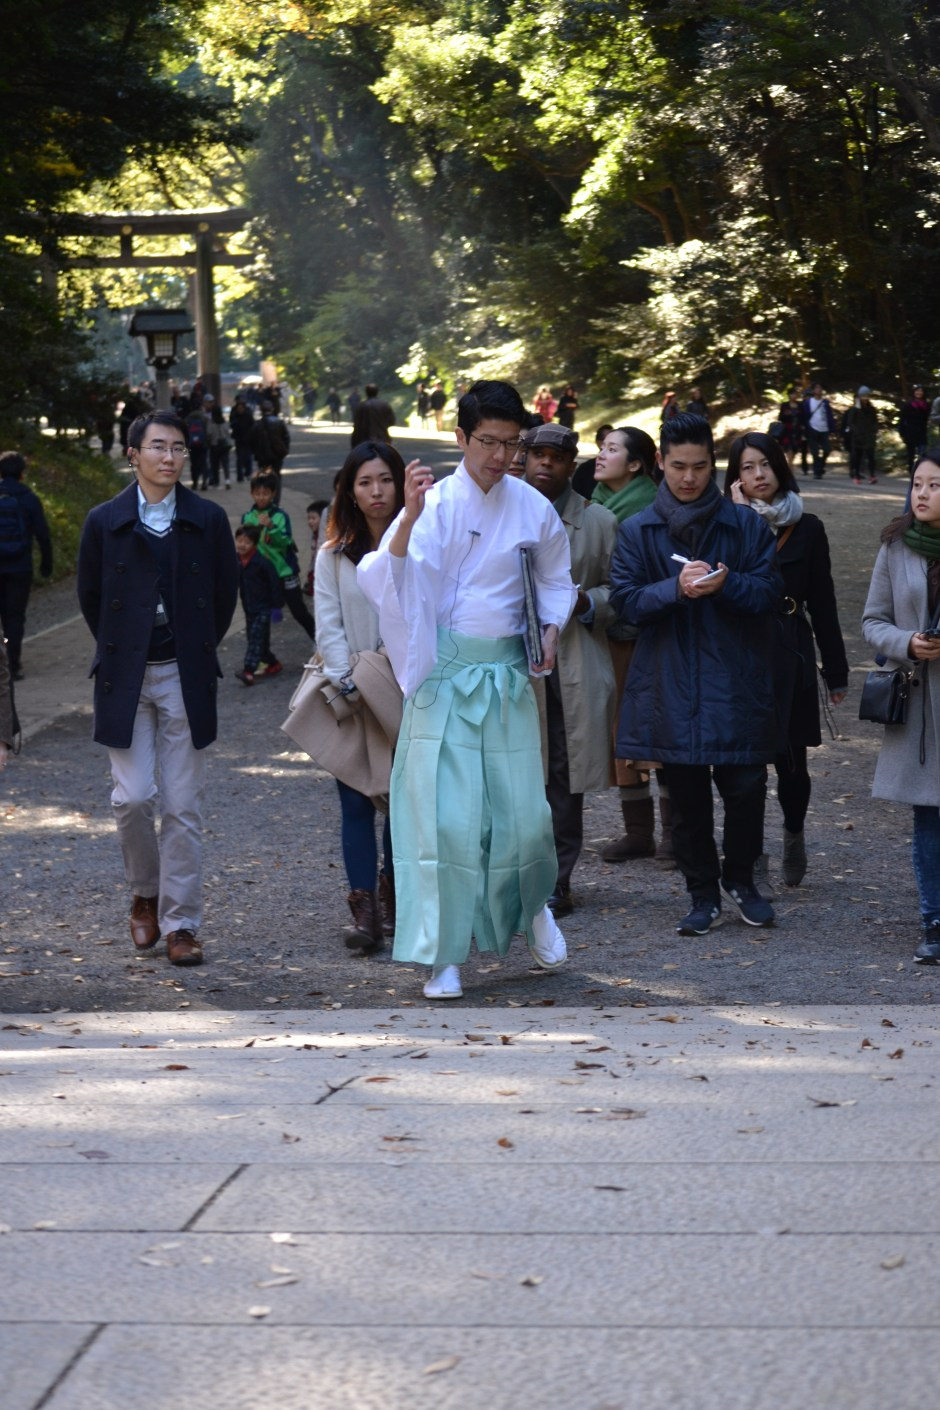 Penn Alumni at Meji Jingu_25Nov_8